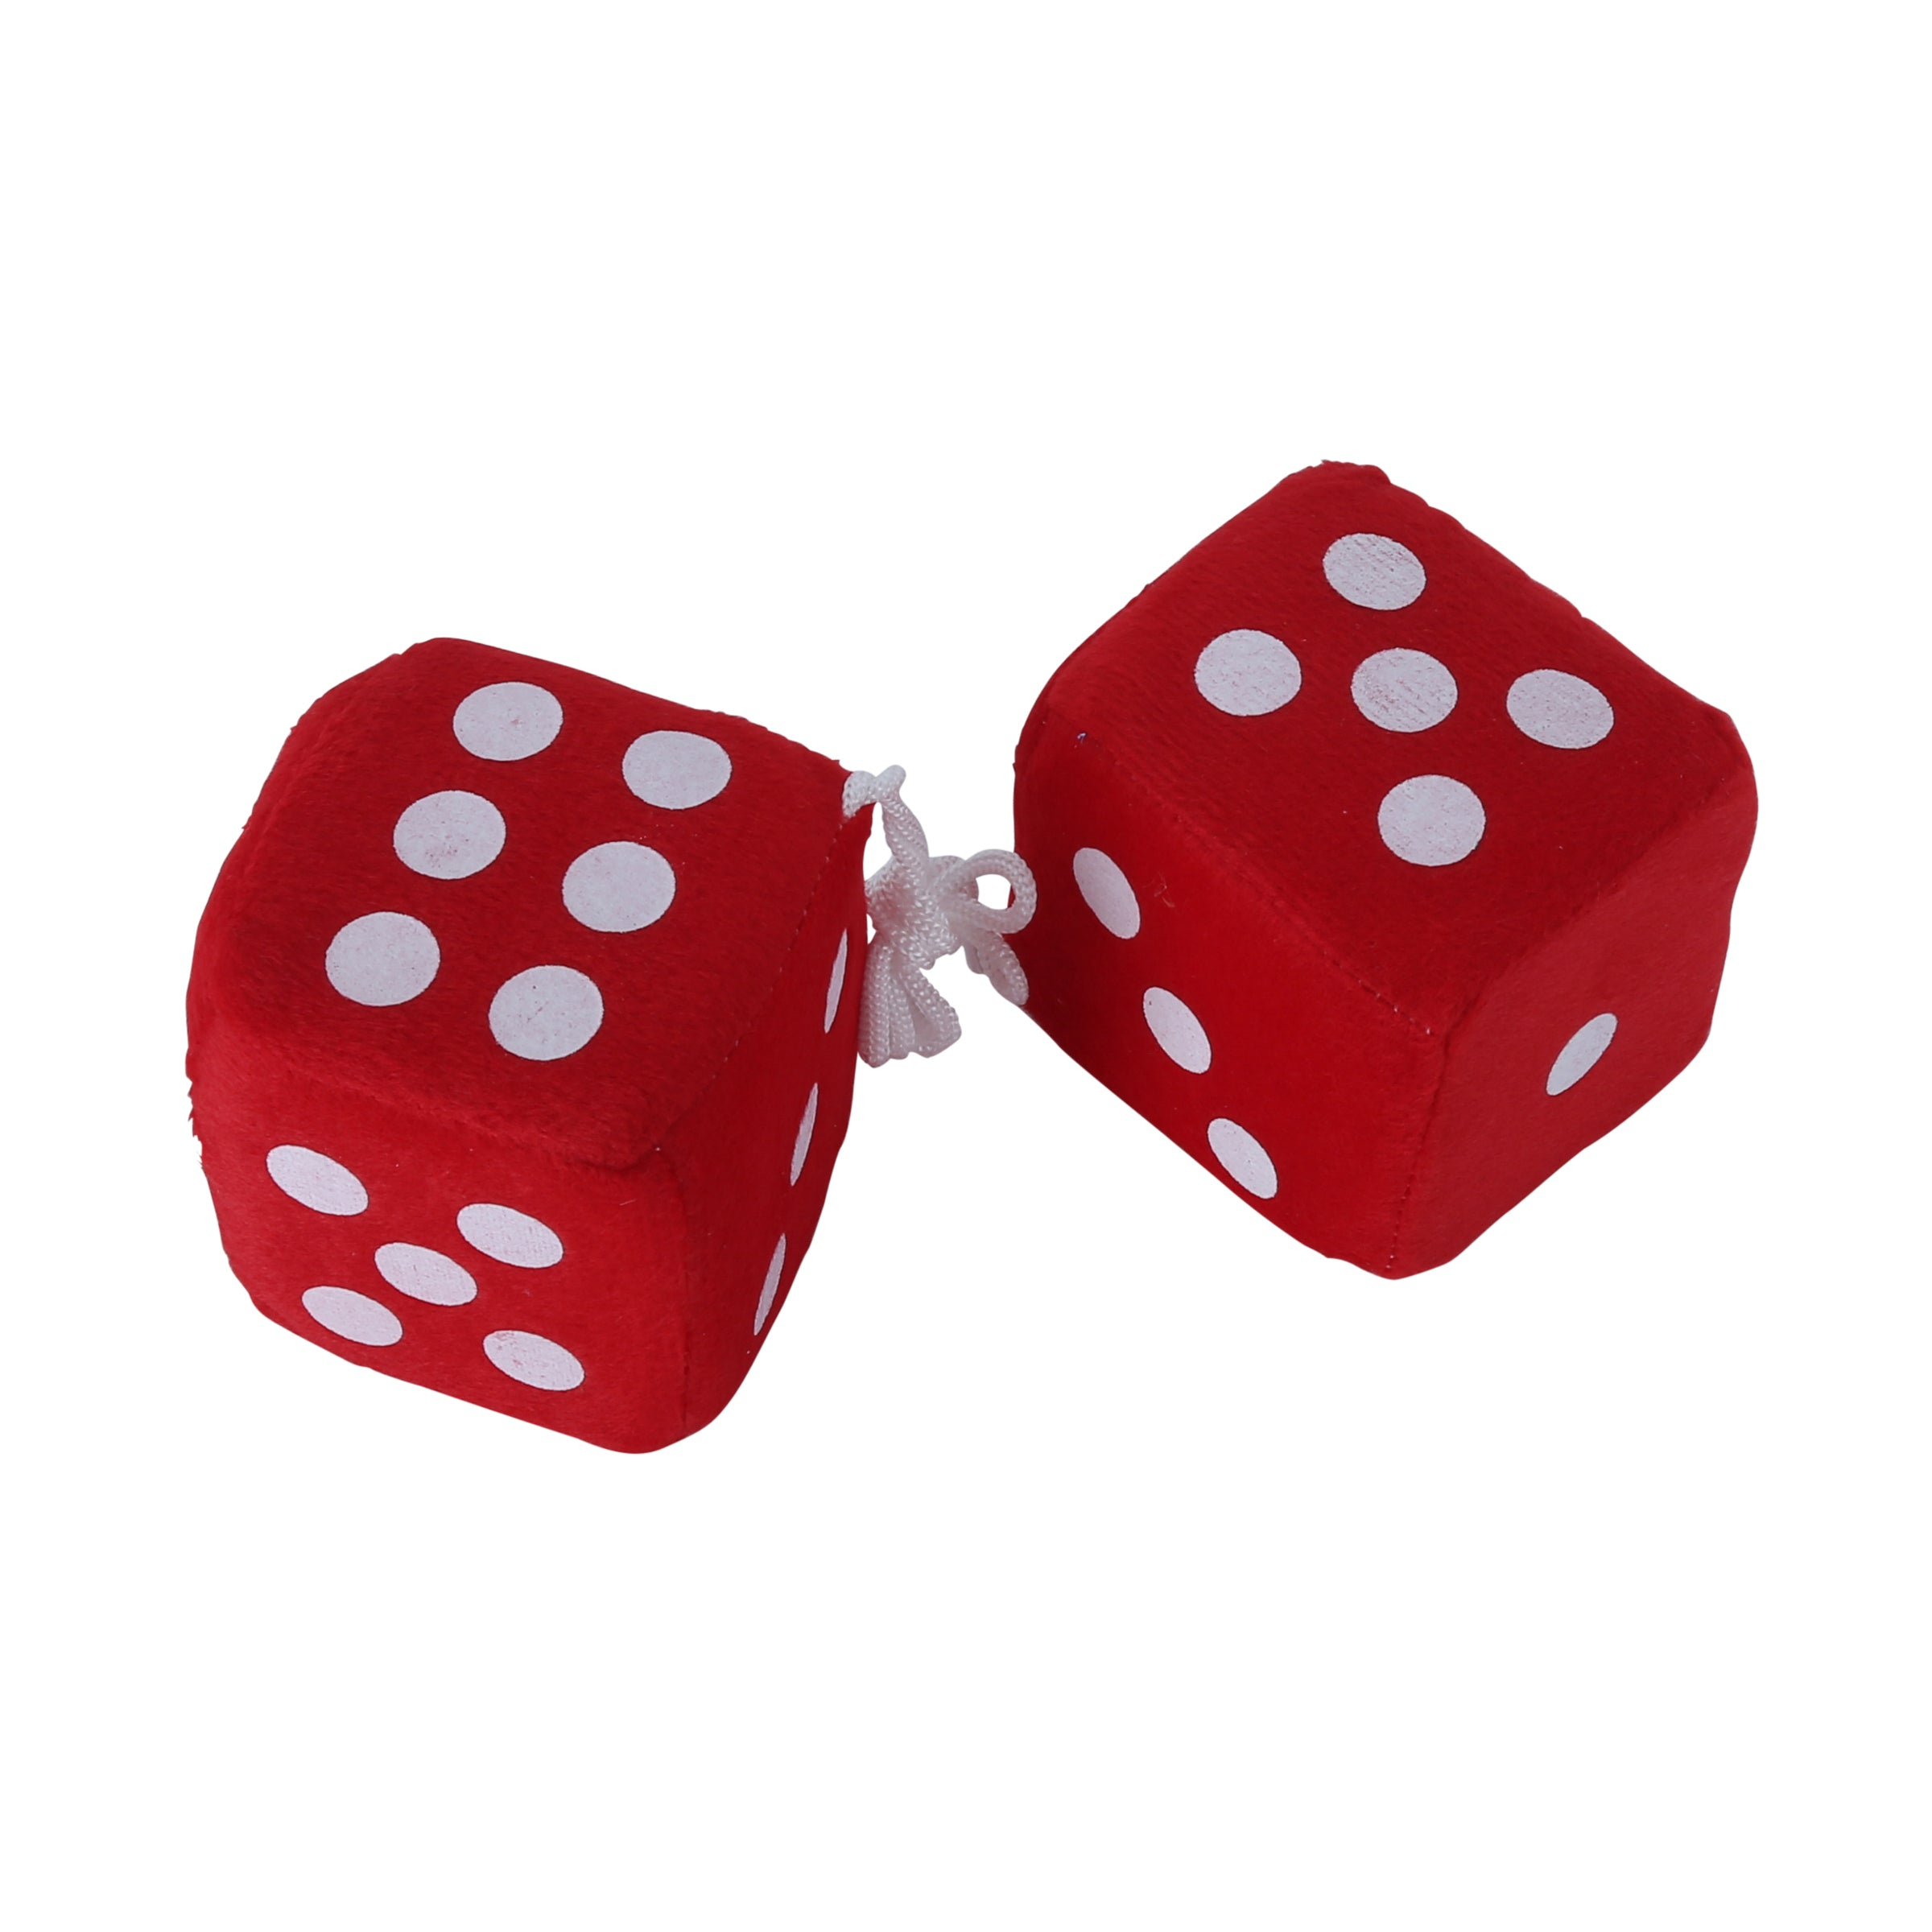 Fuzzy Dice (Red) • 50's Style